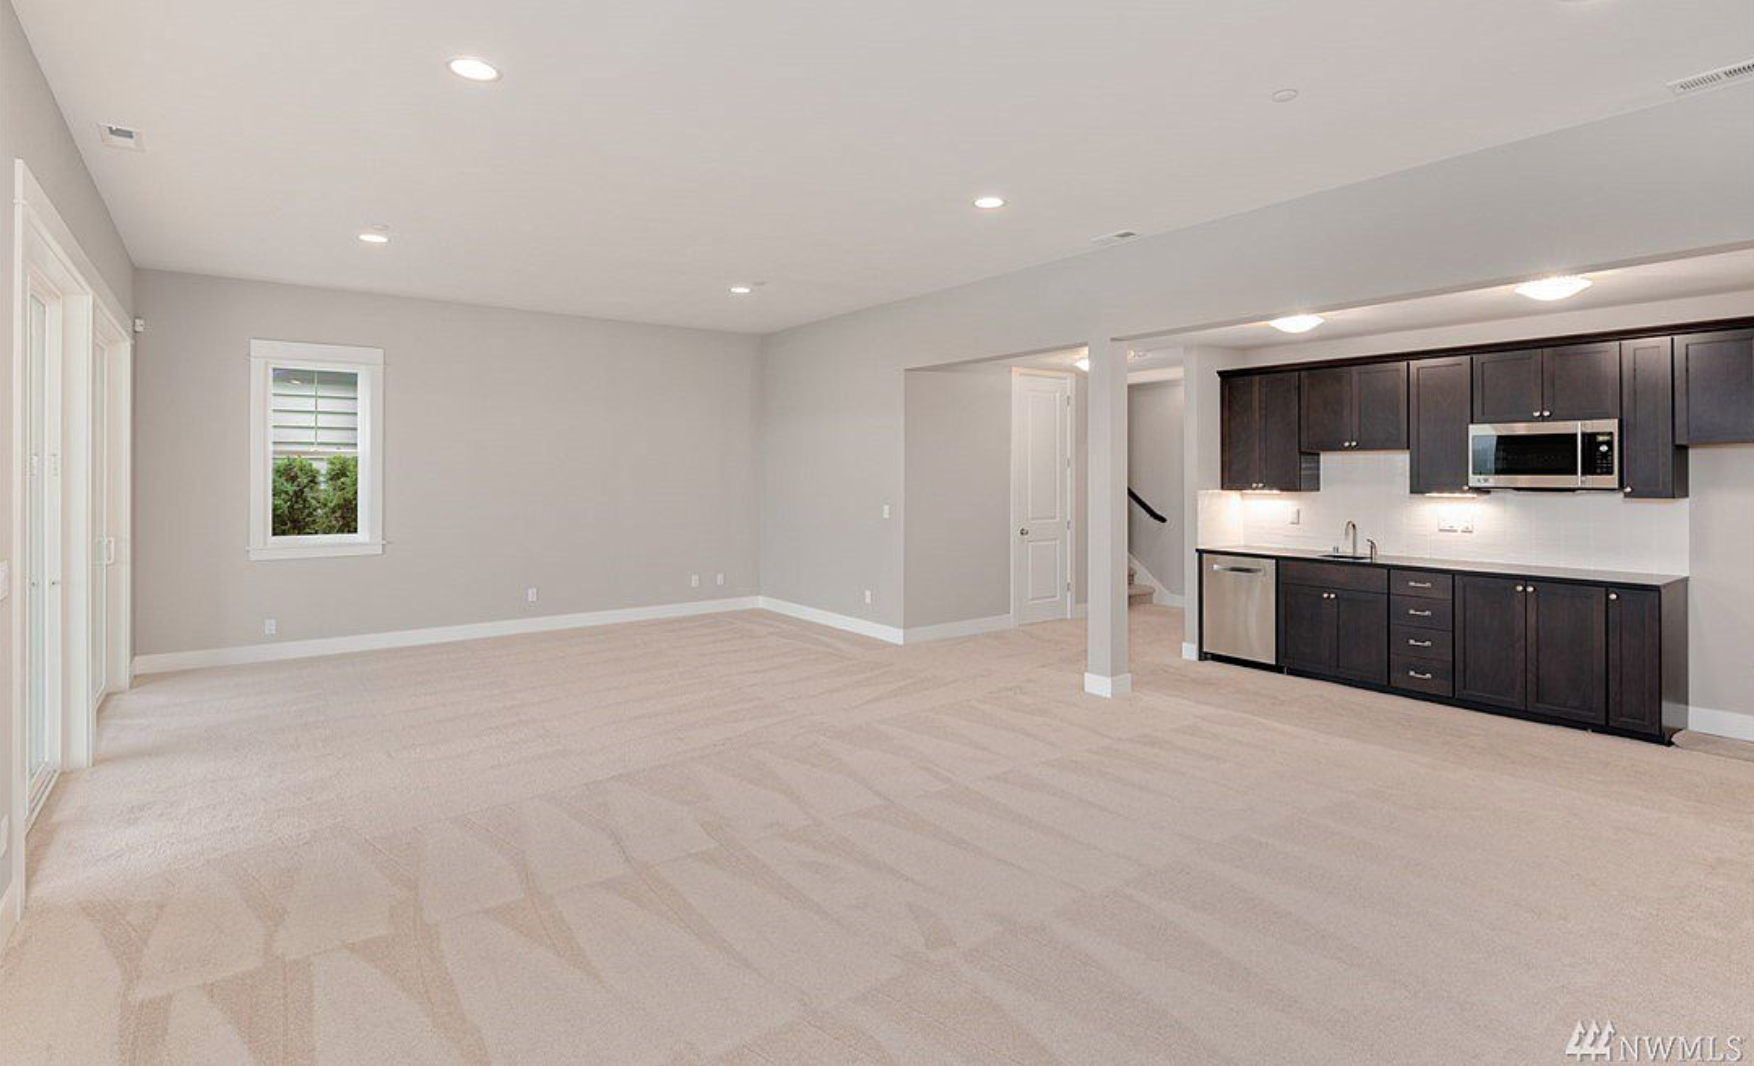 Huge finished 12' ceiling lower level with 2nd kitchen, 2nd formal master and beautiful play space, theater room or View master retreat, with private terrace!